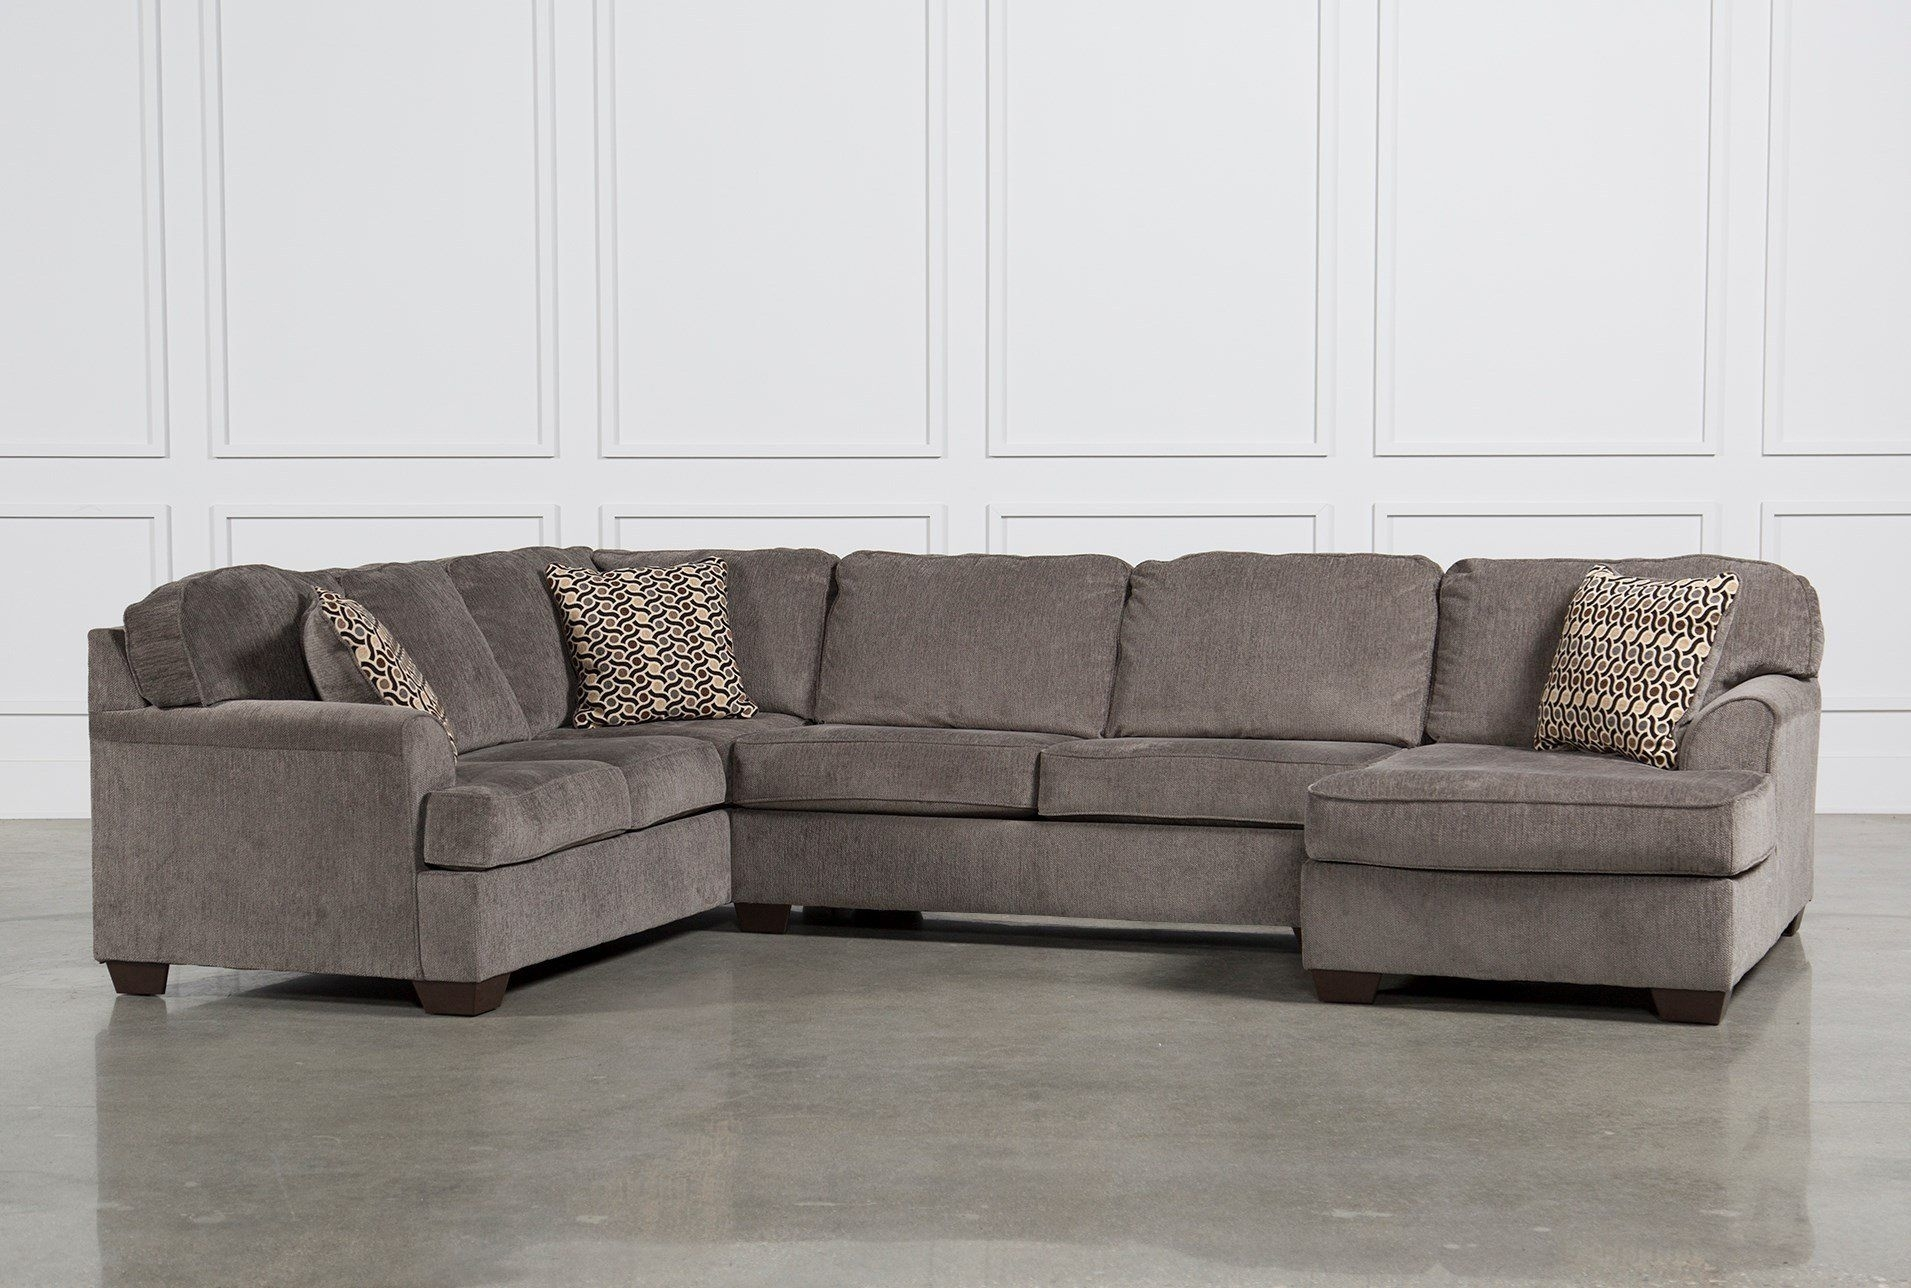 Loric Smoke 3 Piece Sectional W/raf Chaise | Upholstery, Pillows And Pertaining To Malbry Point 3 Piece Sectionals With Raf Chaise (View 2 of 25)